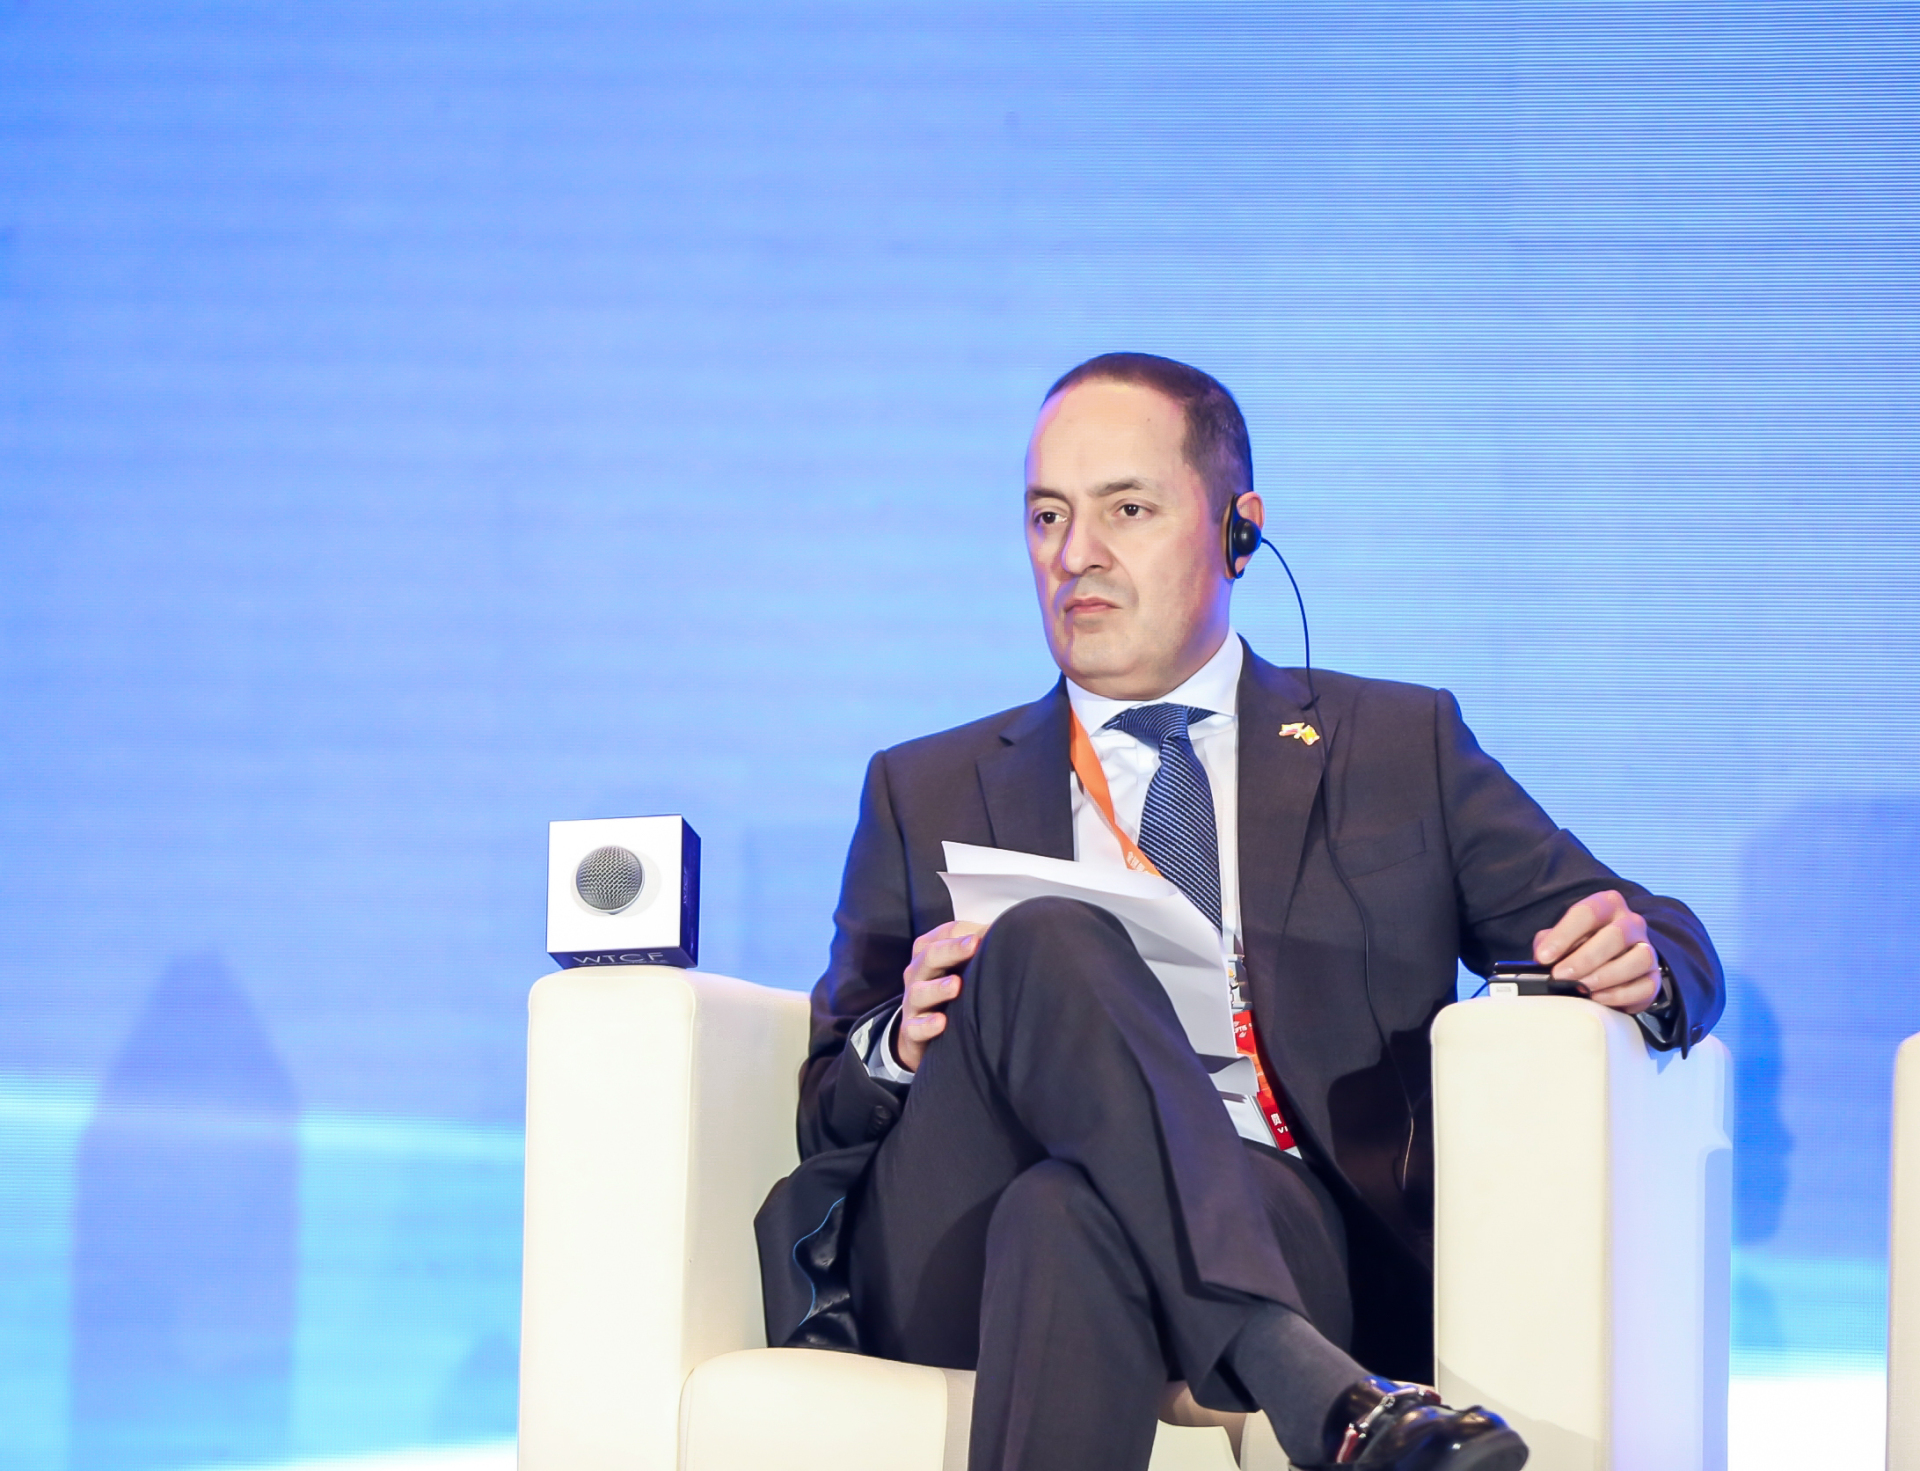 Luis Diego Monsalve, Ambassador of the Republic of Colombia to China